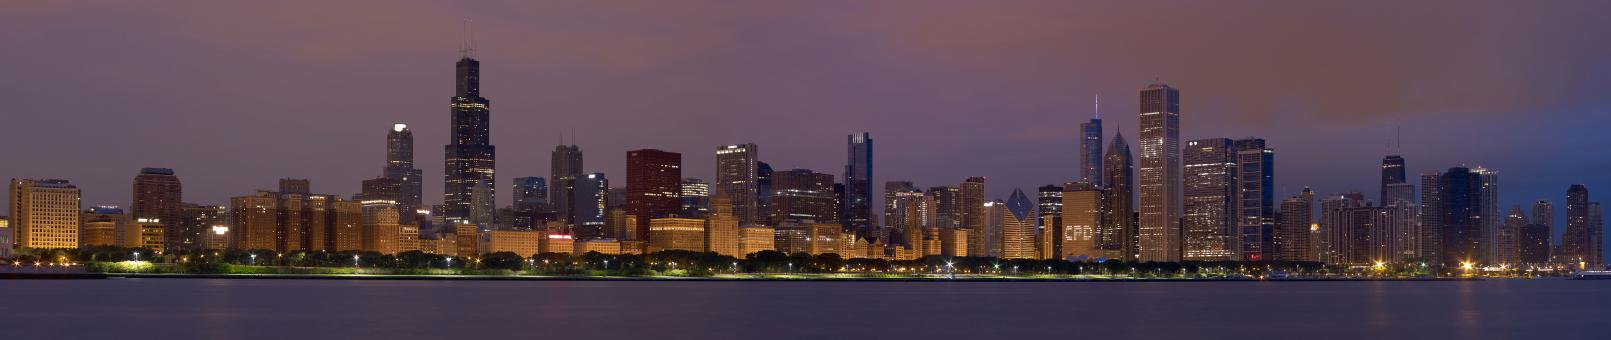 Free Stock Photo of Chicago Panorama 2012